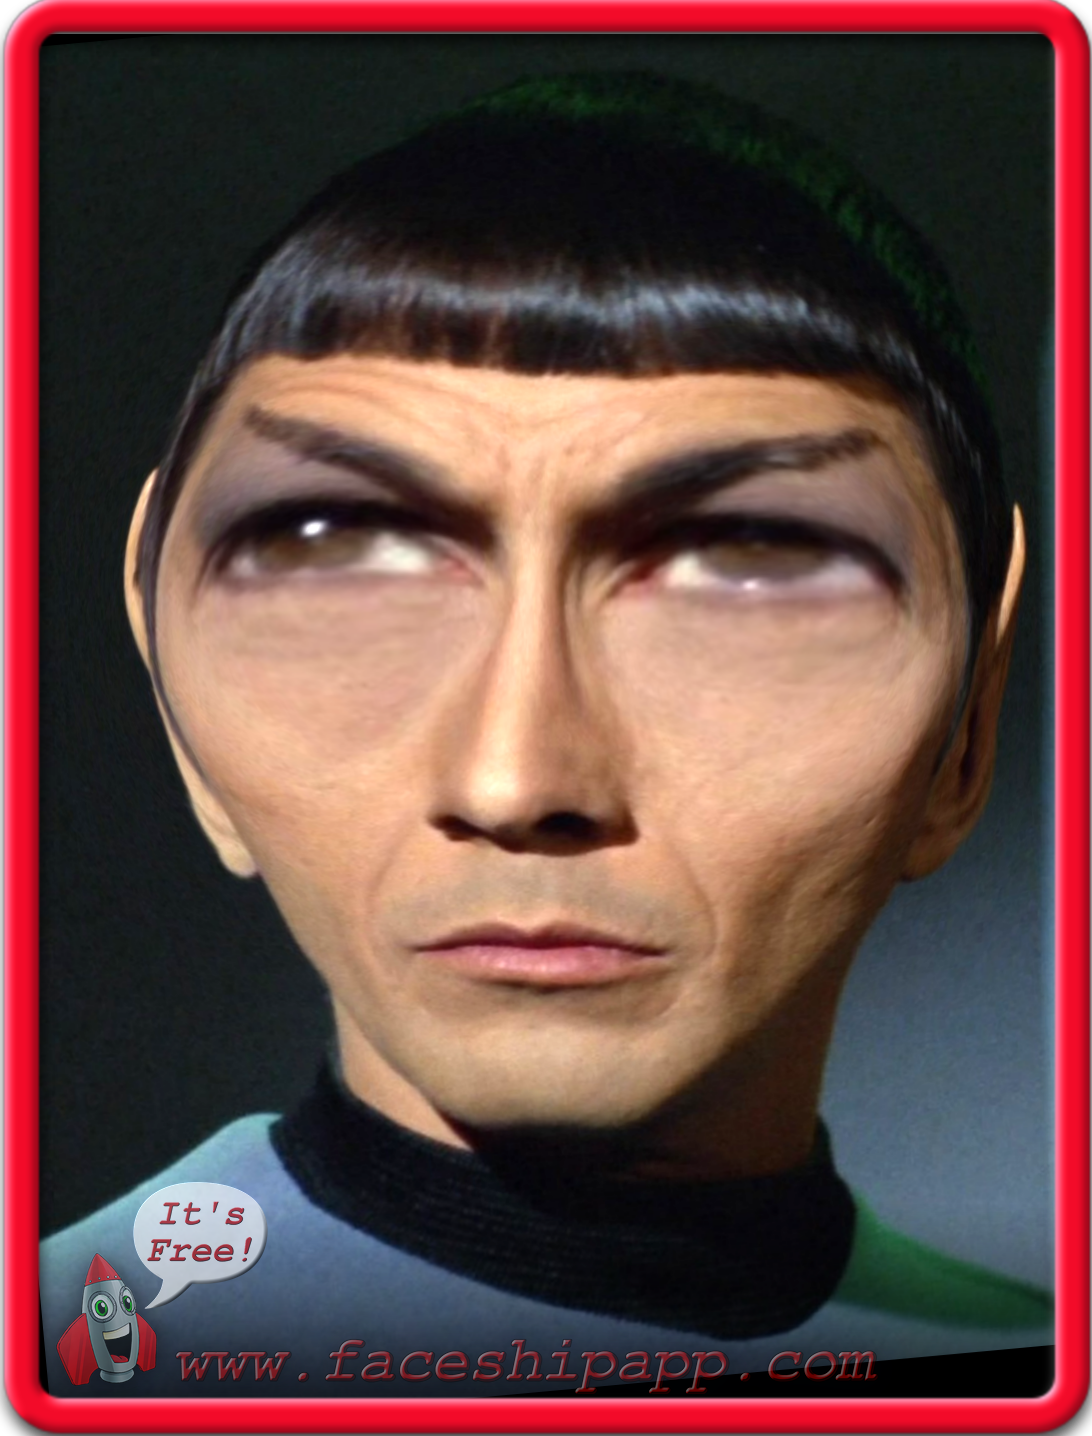 A Spock Variation, created with the new Face-changing app